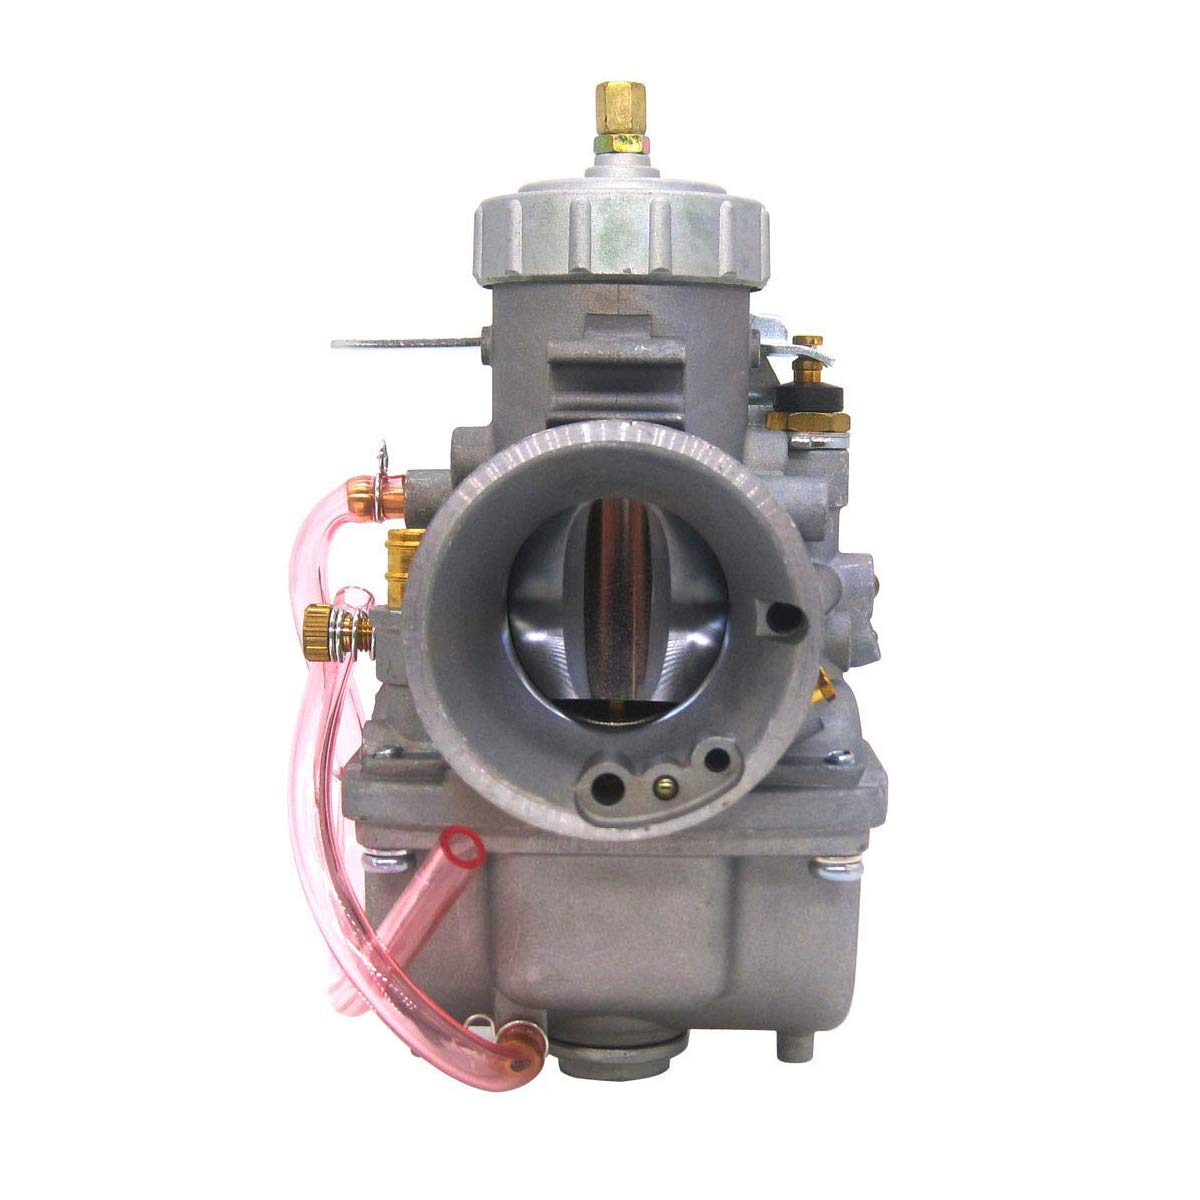 Amhousejoy Carburetor Fits Mikuni Round Slide VM Series Carb 34mm Bore VM34-168 42-6015 VM34SC Haocheng Parts Co. Ltd.